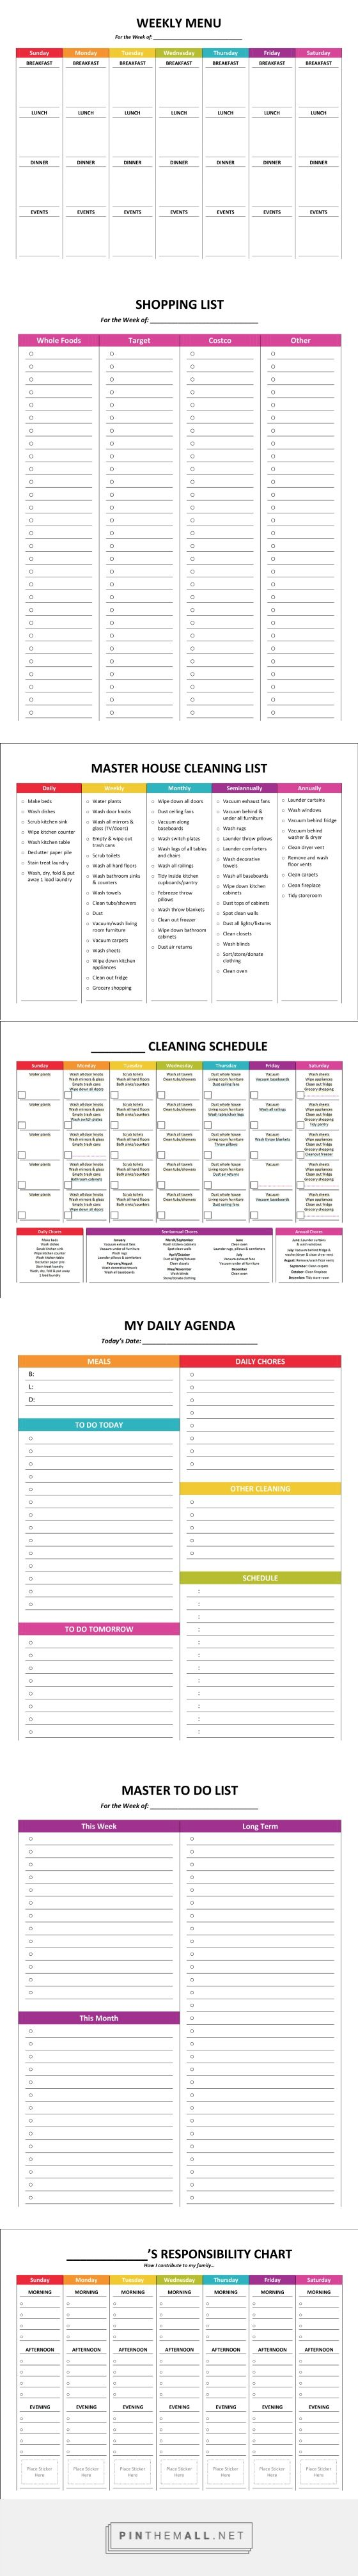 Complete Housekeeping Printable Set! | Visual reminders and supports for daily and weekly chores, including menu planning, shopping lists, chore responsibility chart and more.